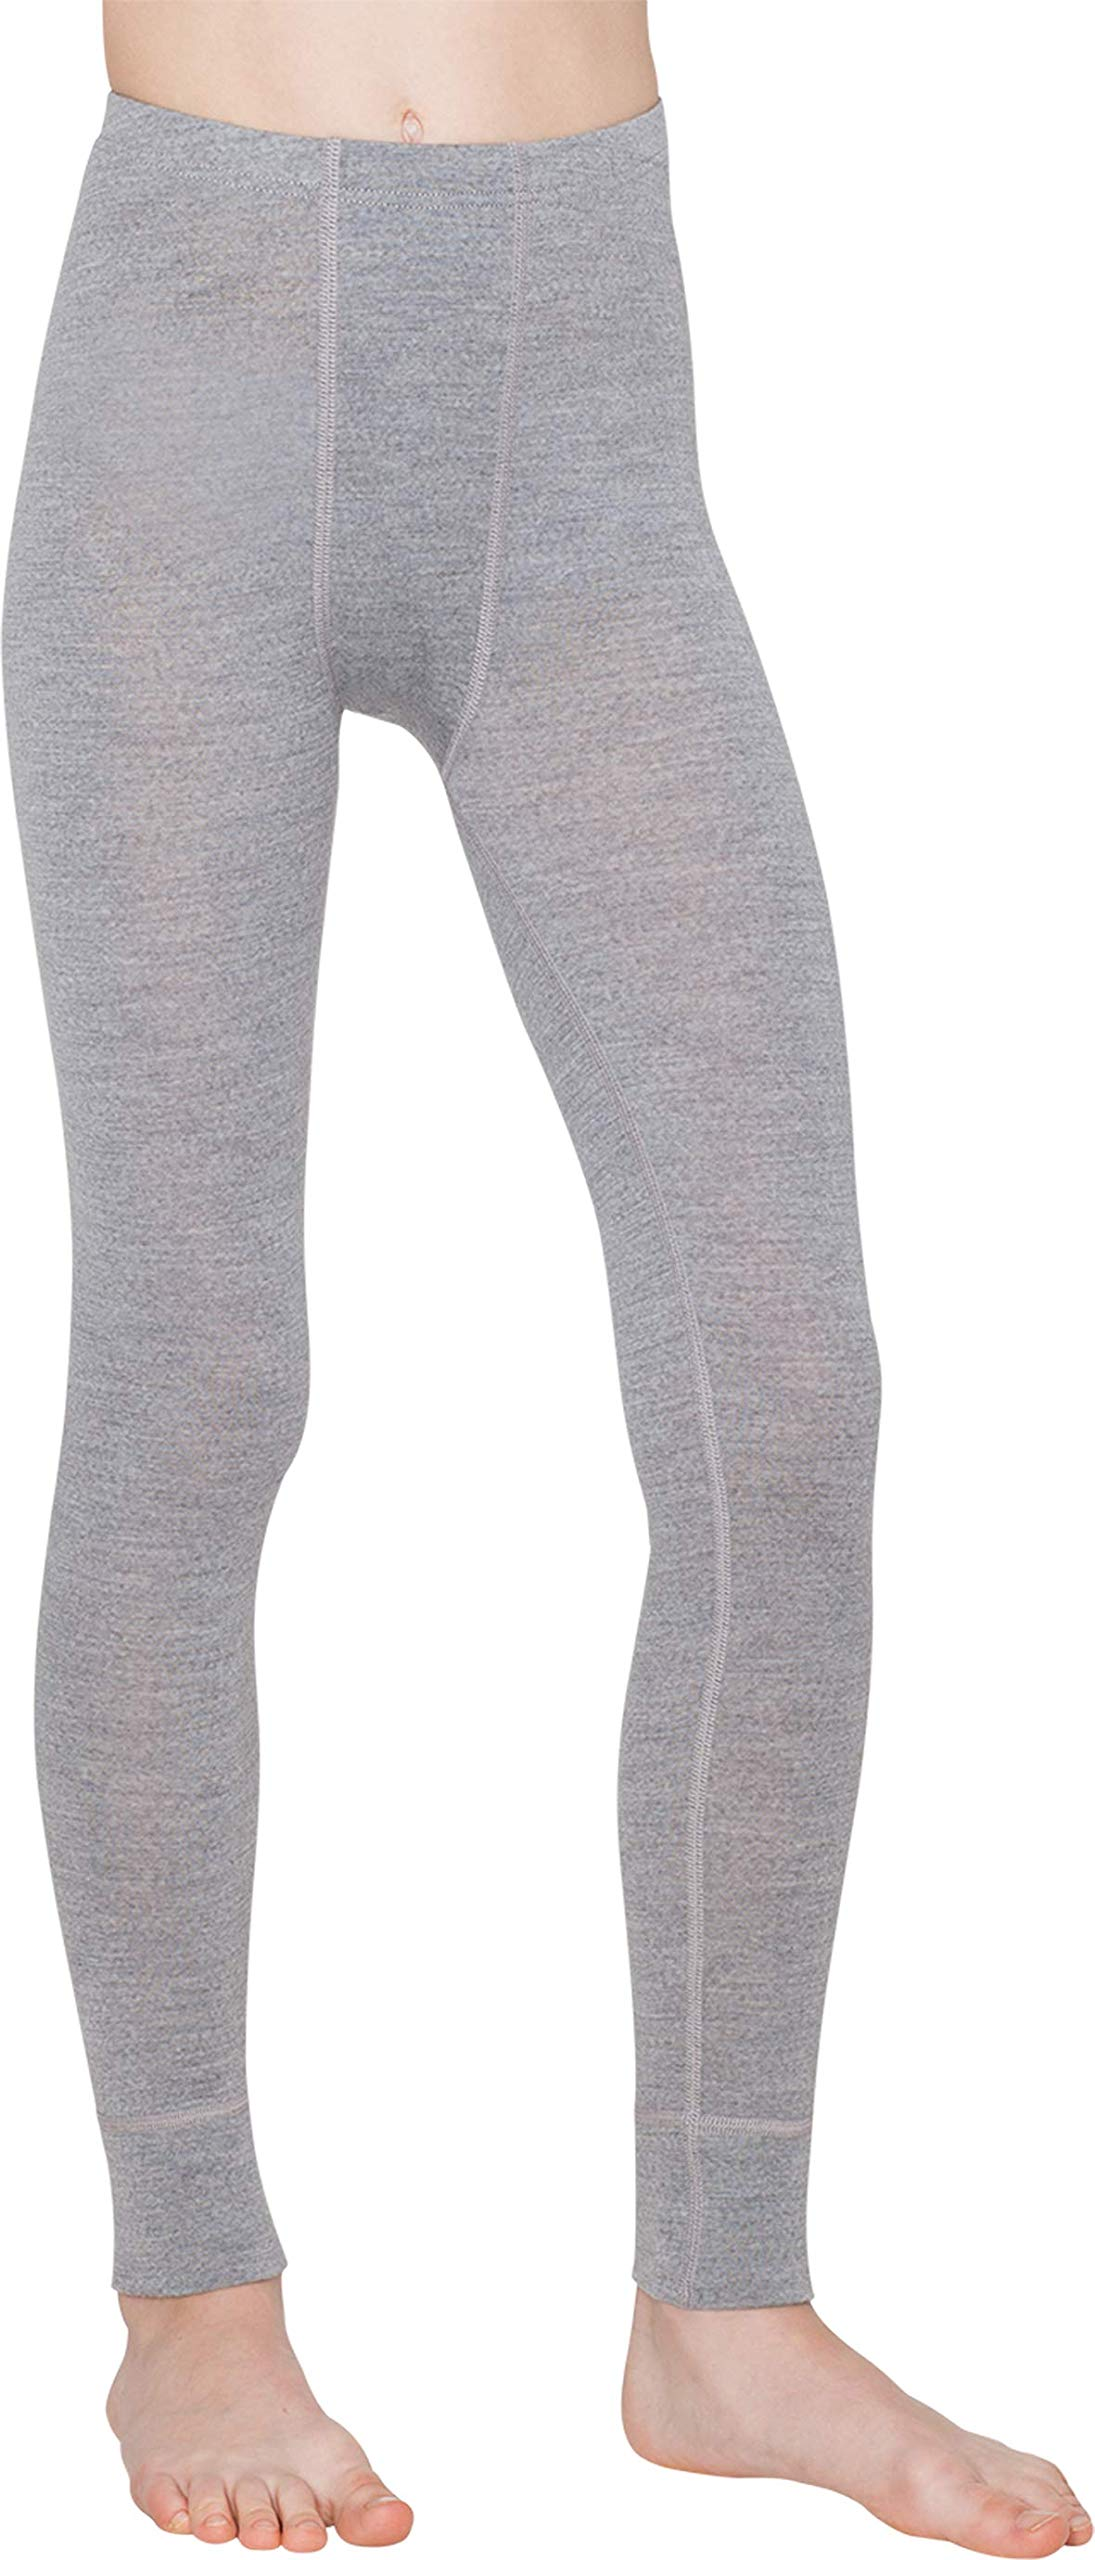 Thermowave - Merino Warm/Junior Merino Wool Pants/Silver Melange - from 4' 4'' to 4' 6'' by Thermowave